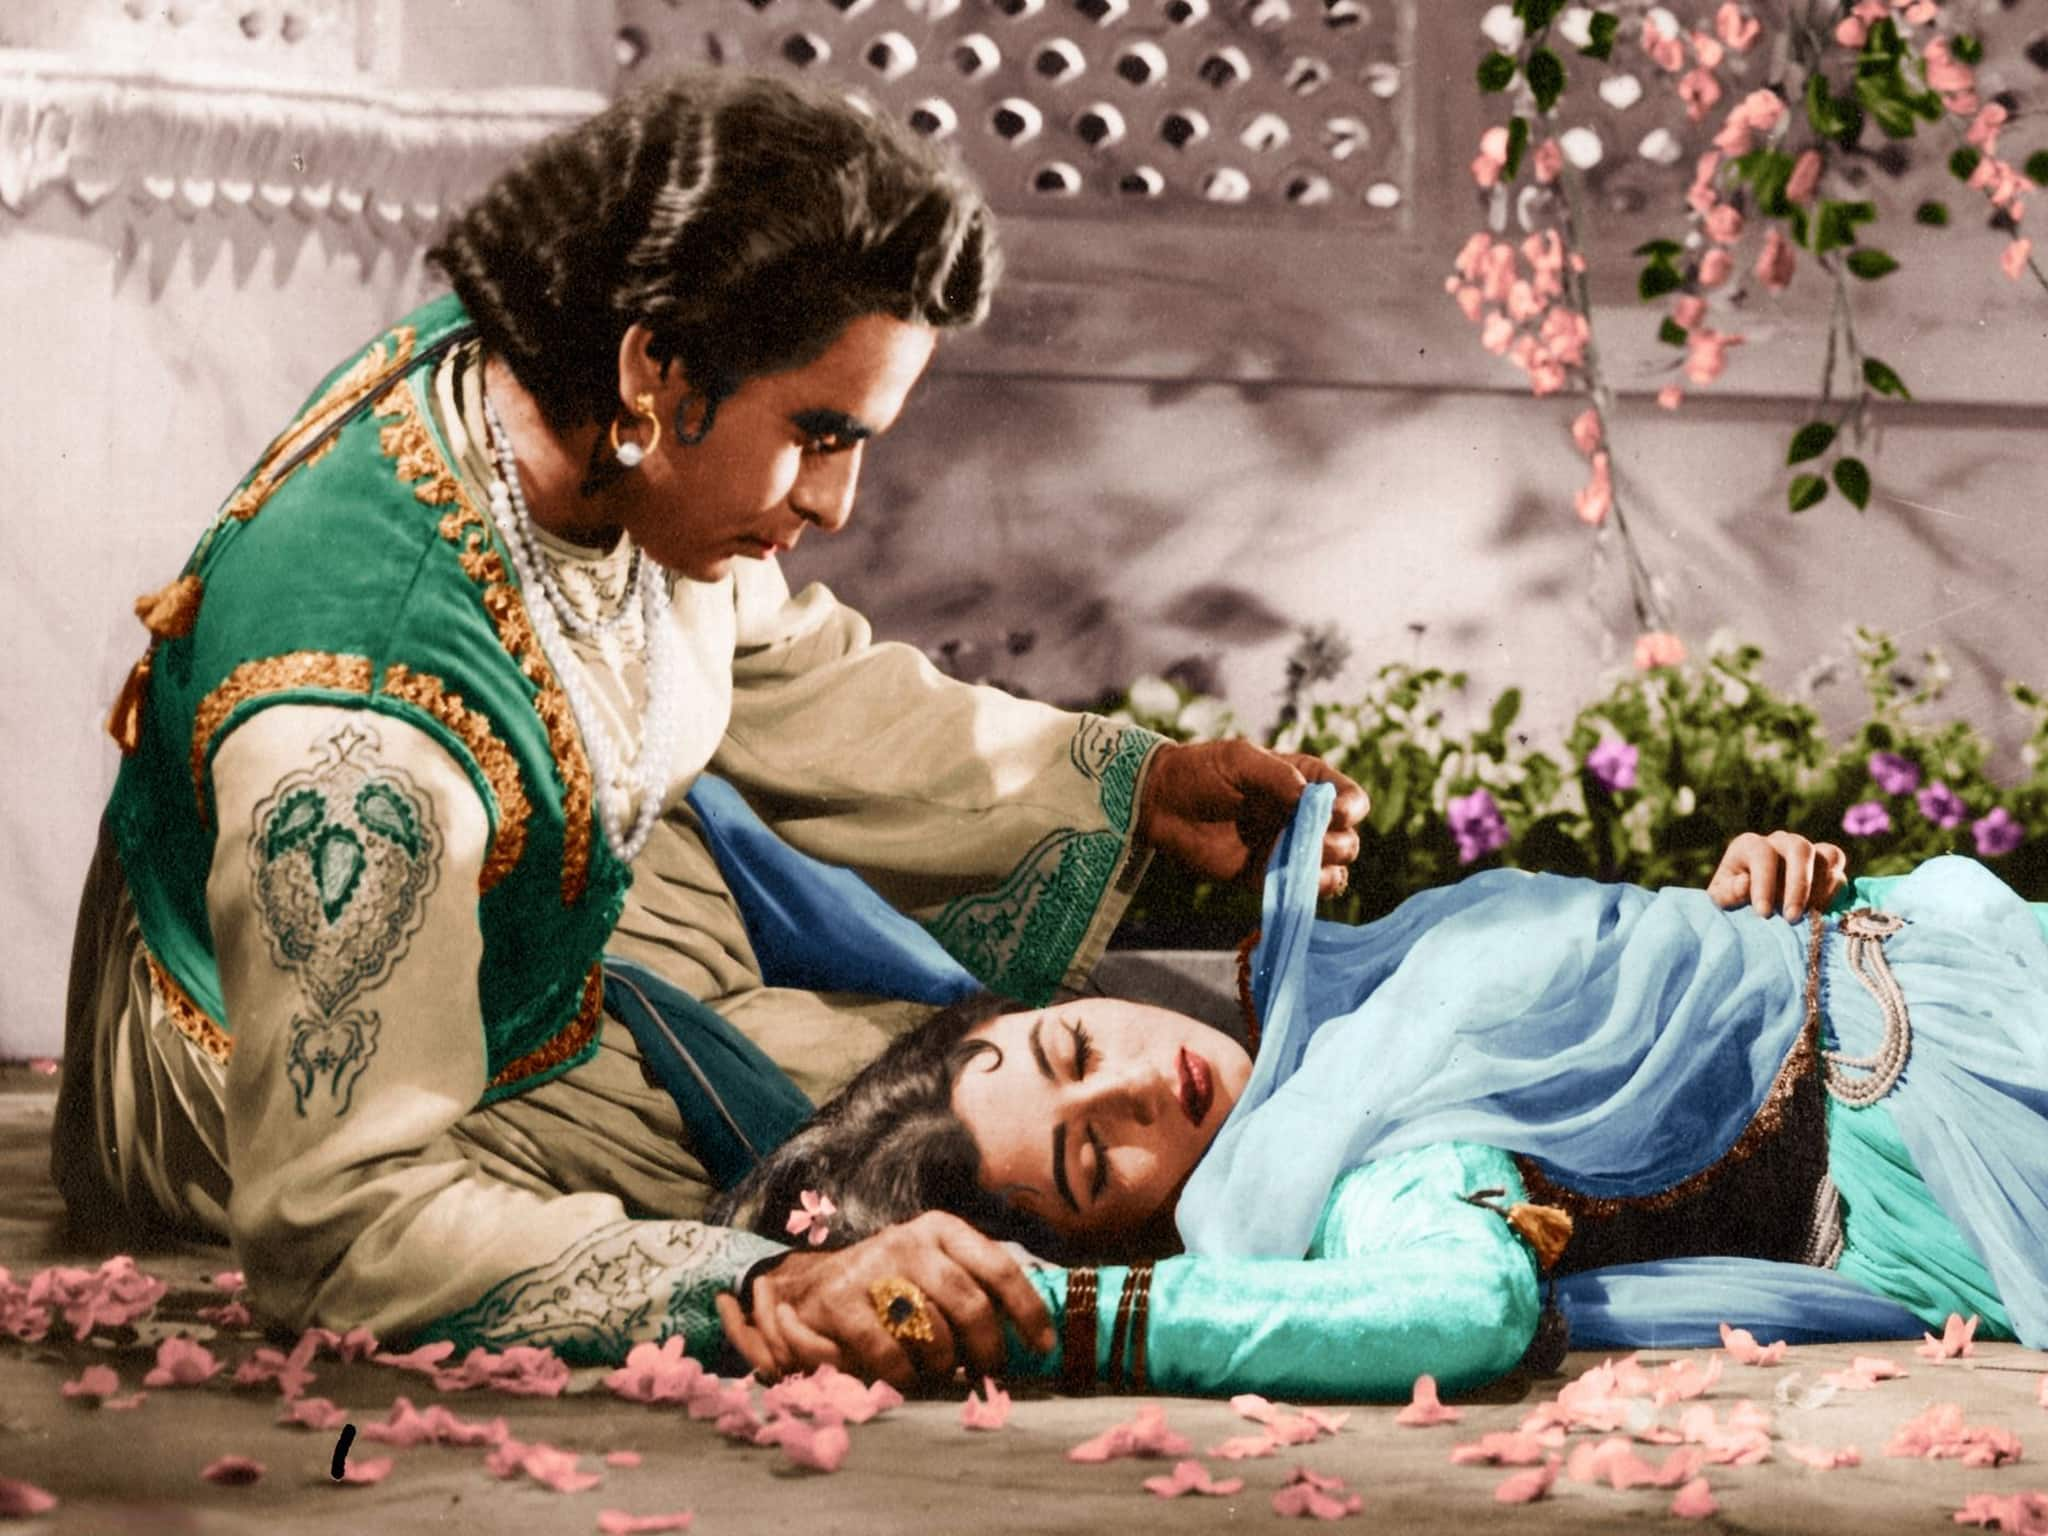 Mughal-E-Azam's Screenplay Enters Oscars Library In Hollywood On 60th Anniversary